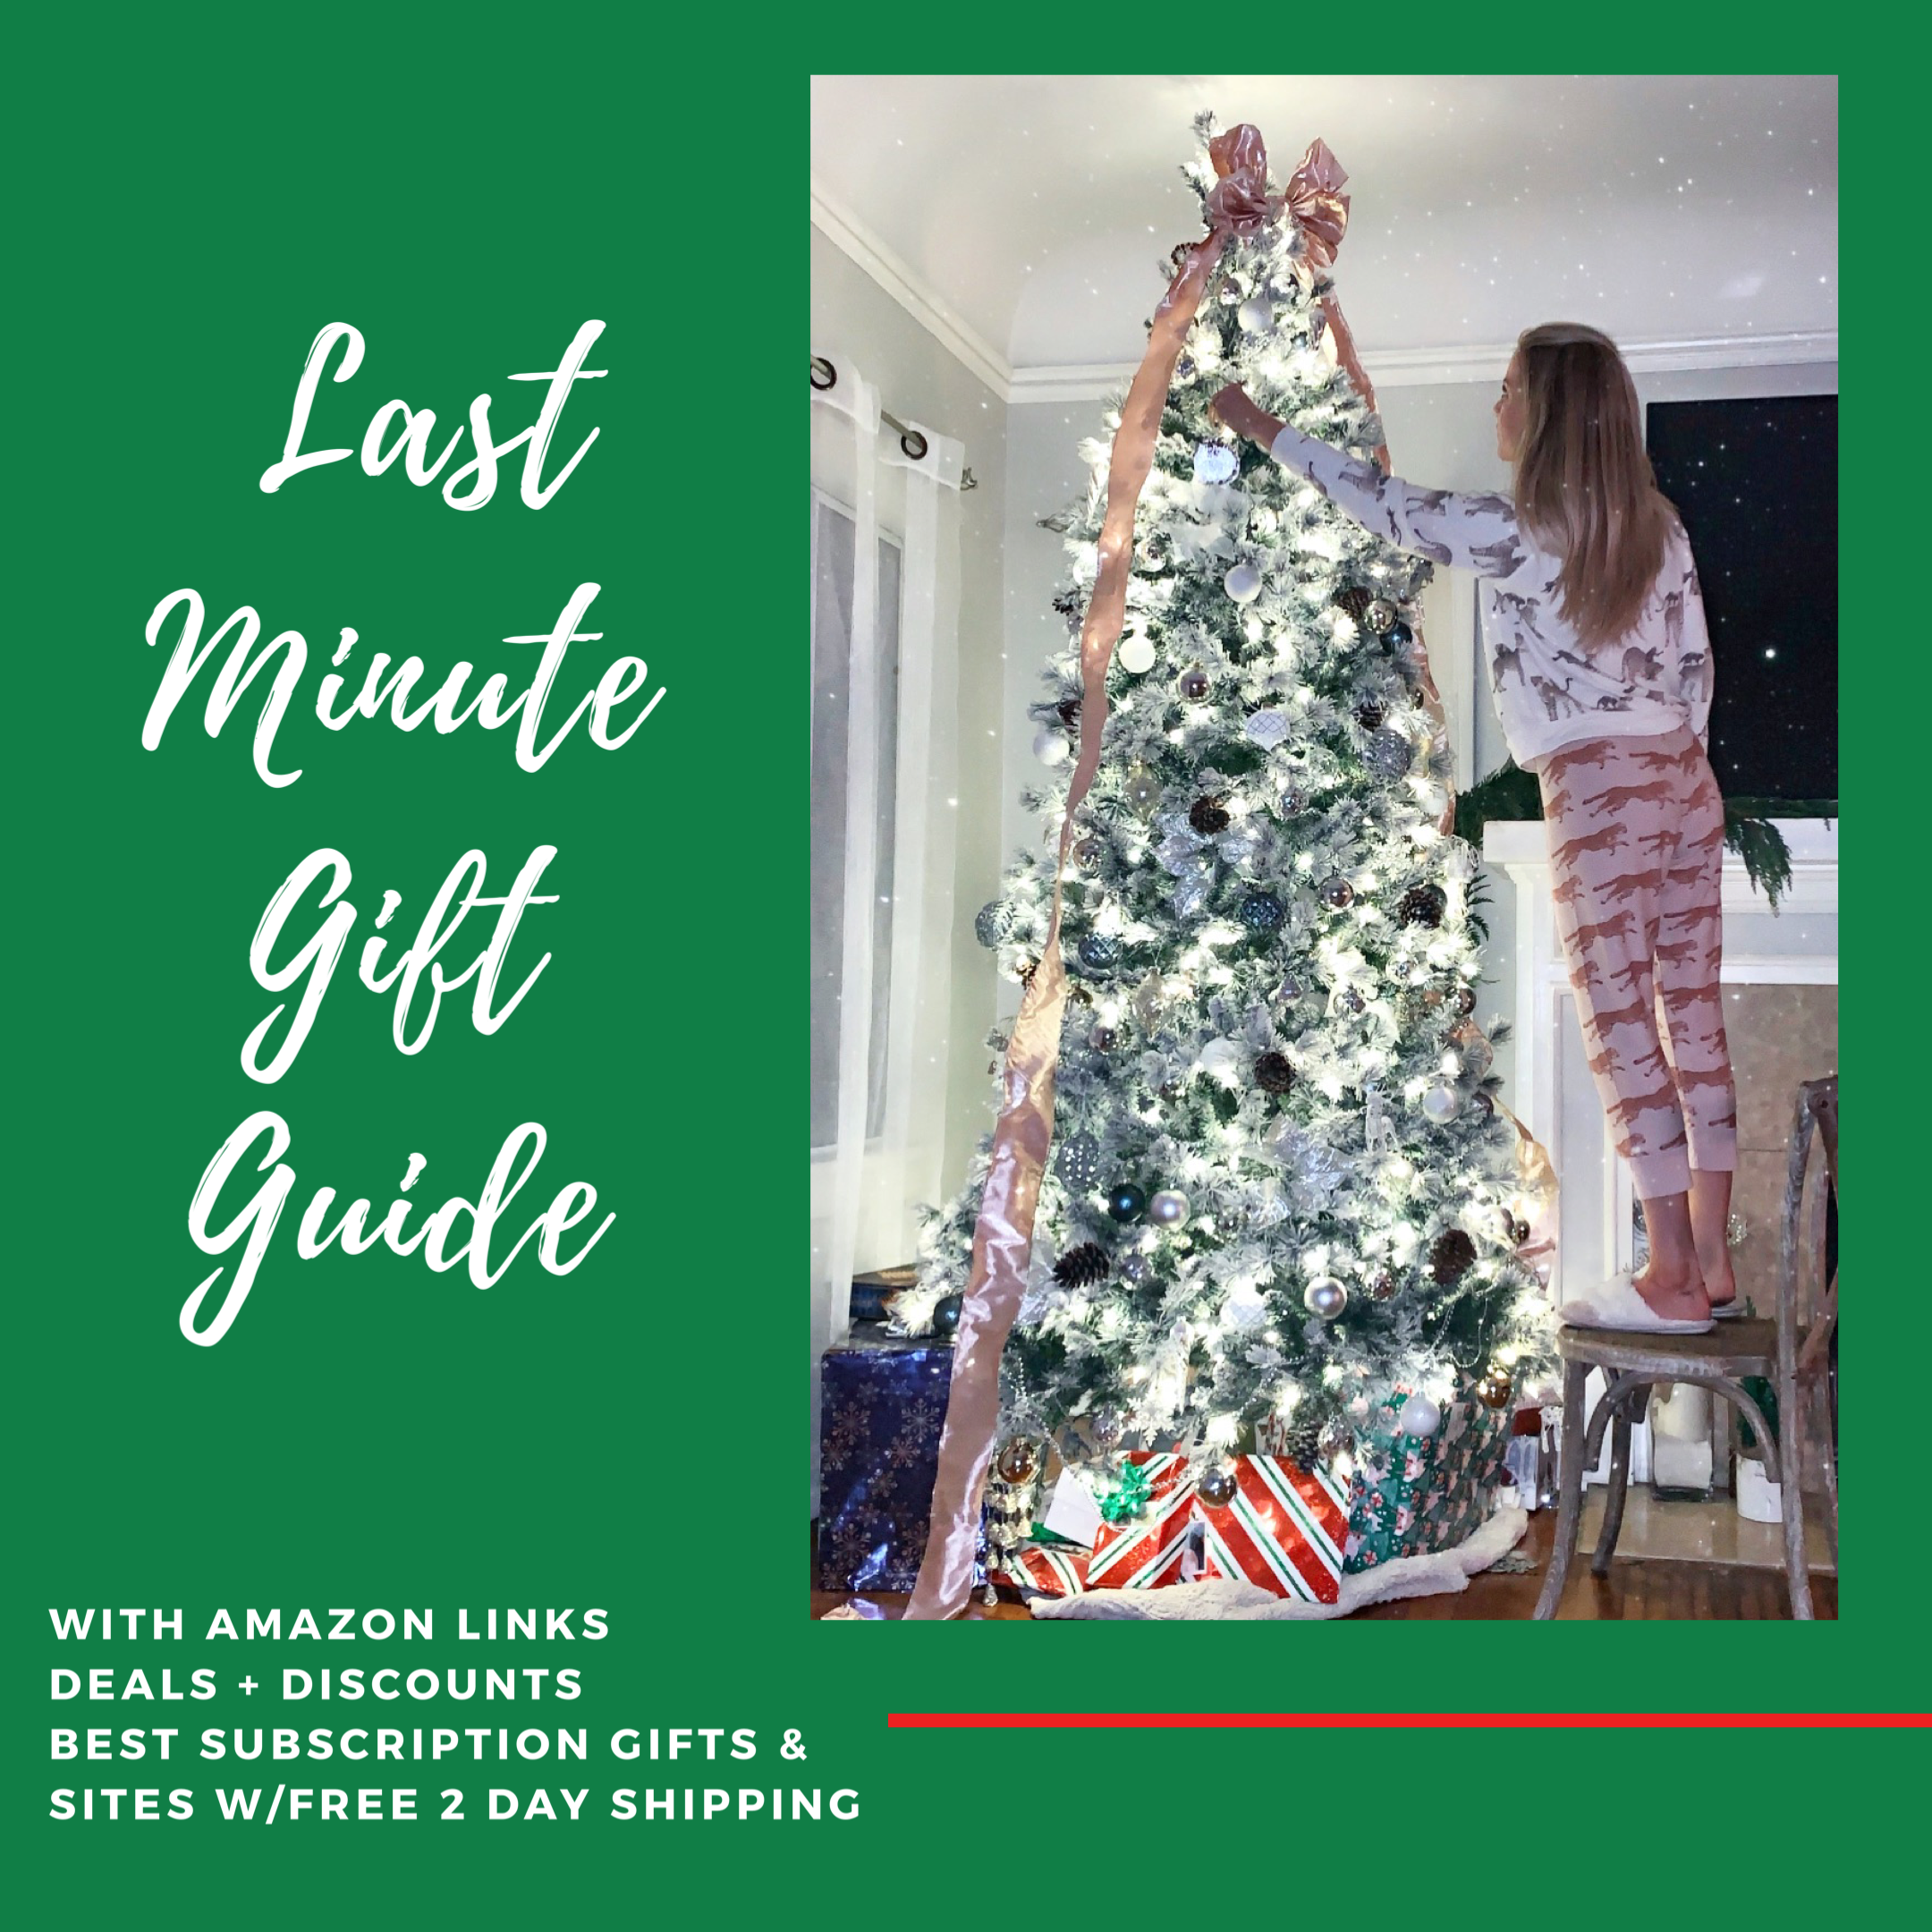 Last Minute Gift Guide {w/Amazon links + deals!}